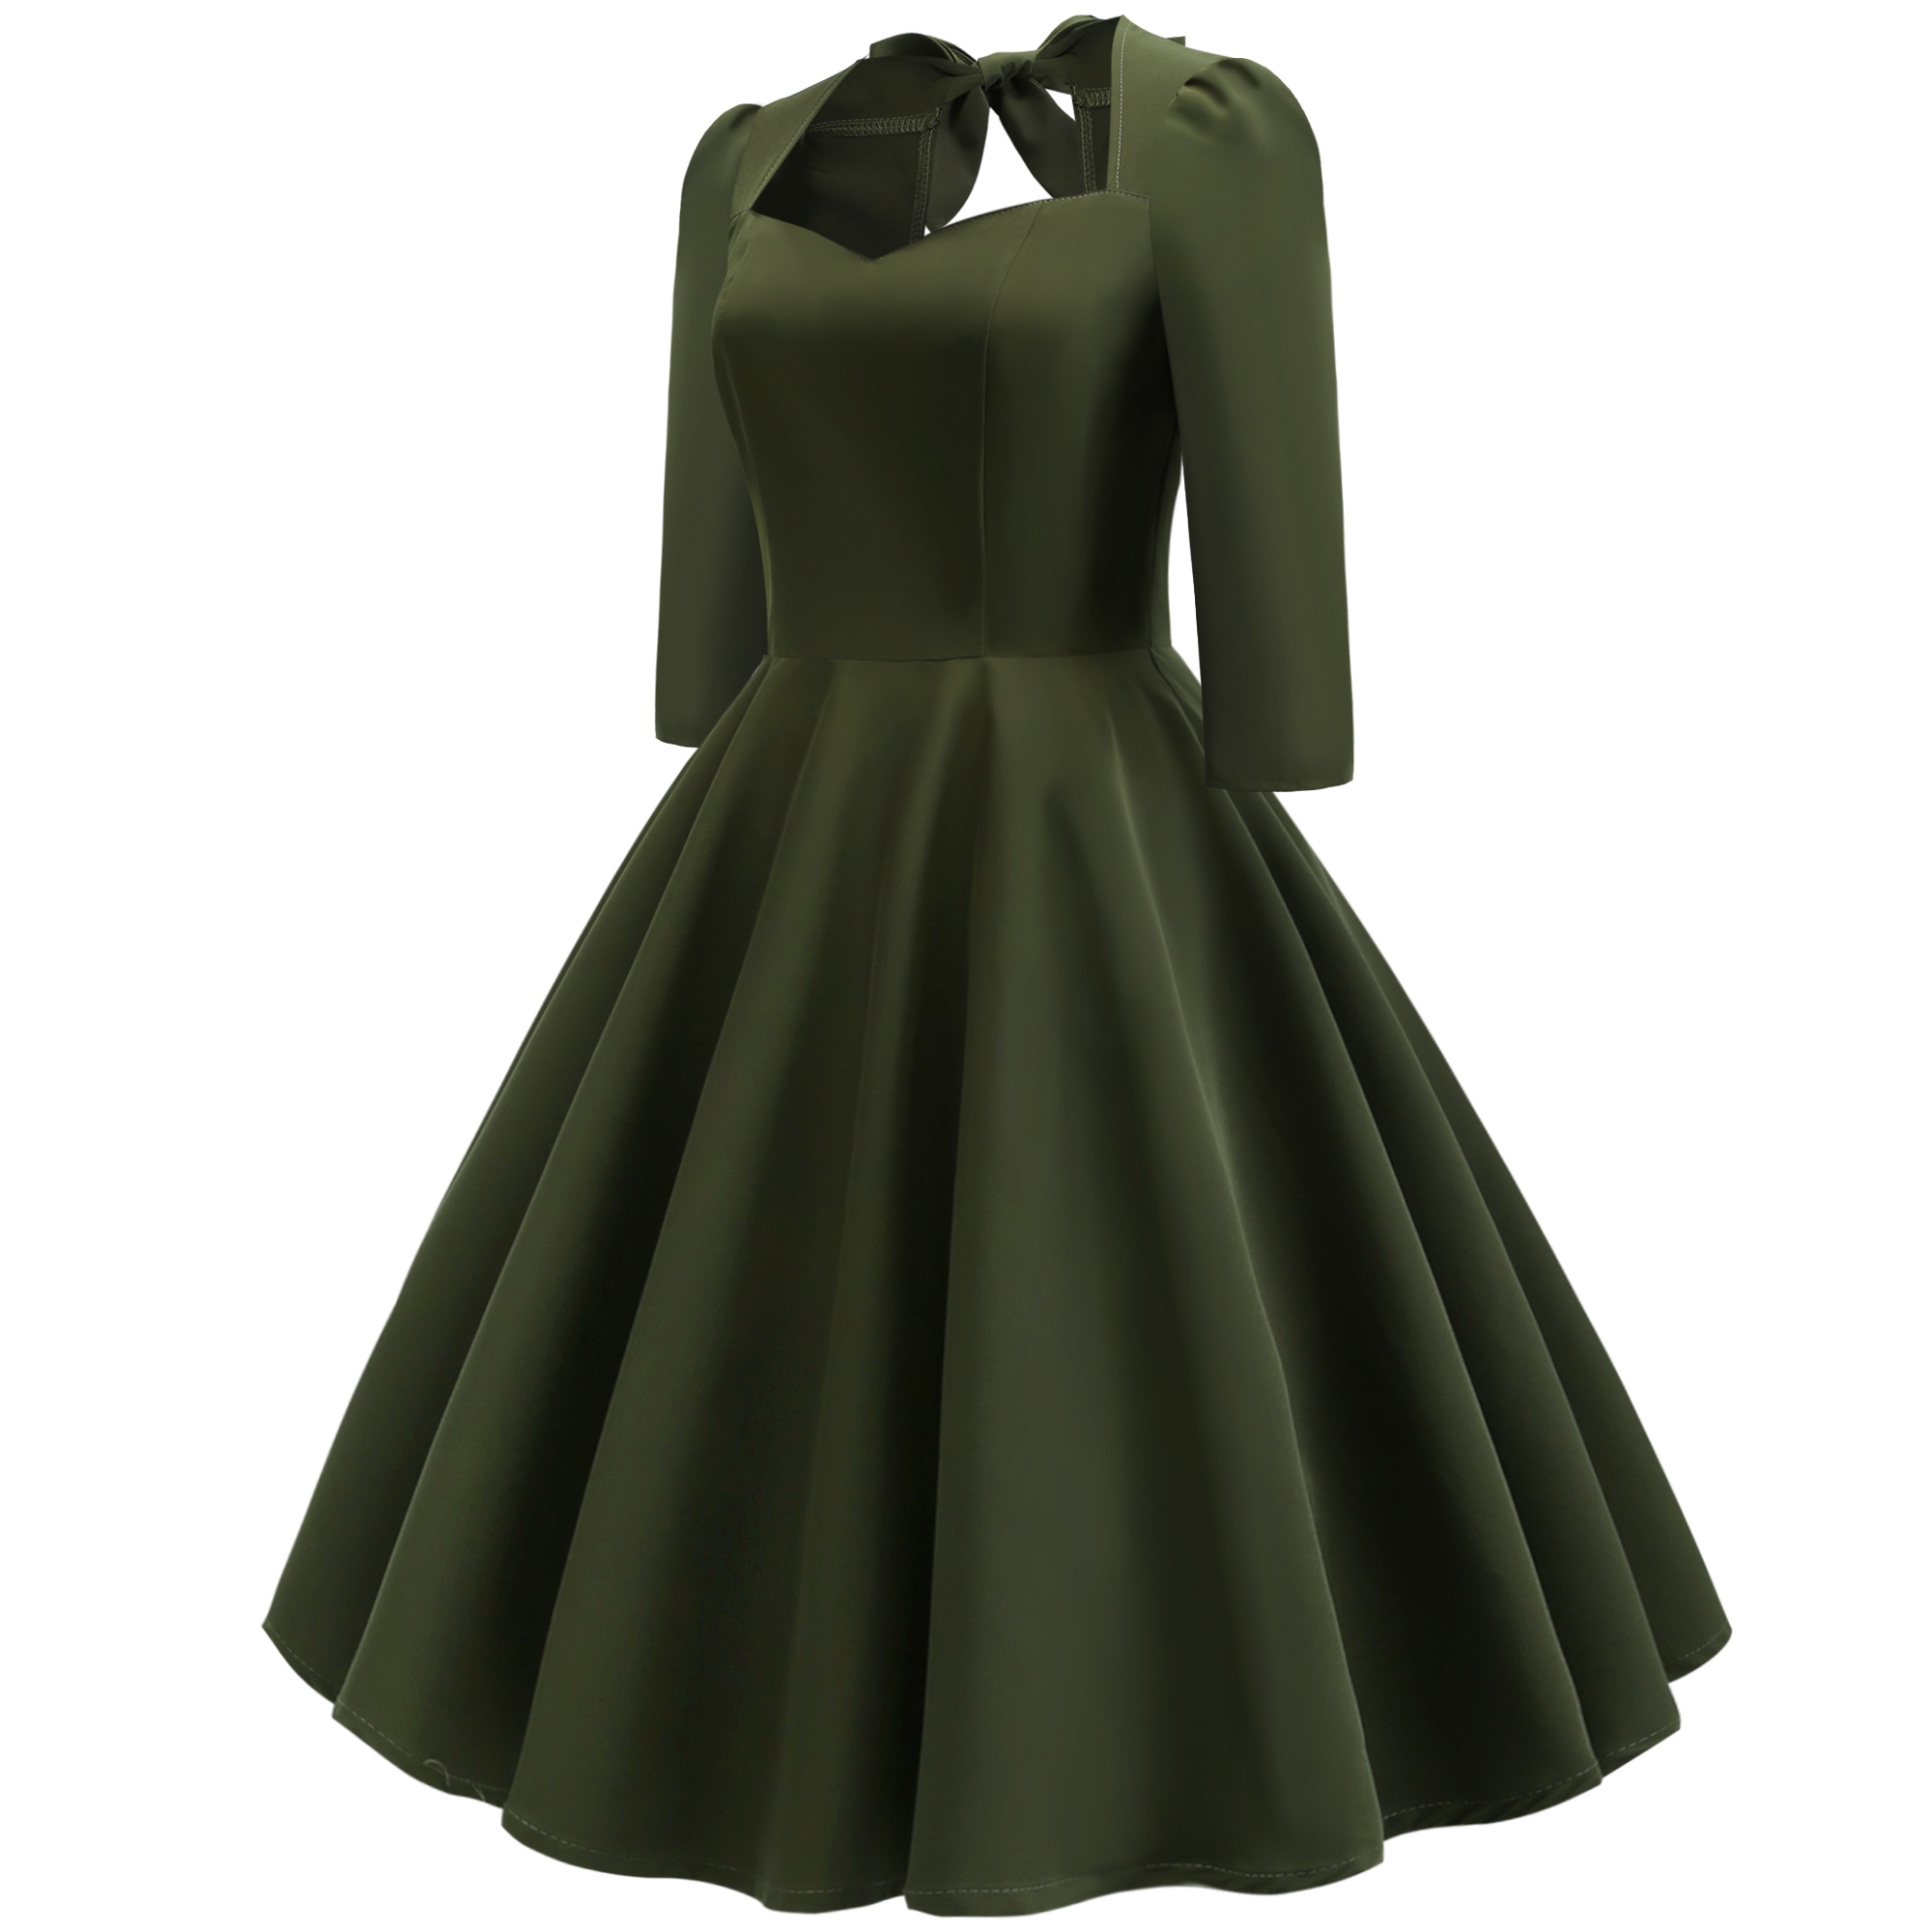 40753c29b0f9 Spring Autumn Women Army Green Elegant Vintage Dresses 2019 Bow Tie Back  Midi Solid Dress Women 3/4 Sleeve Party Backless Dress